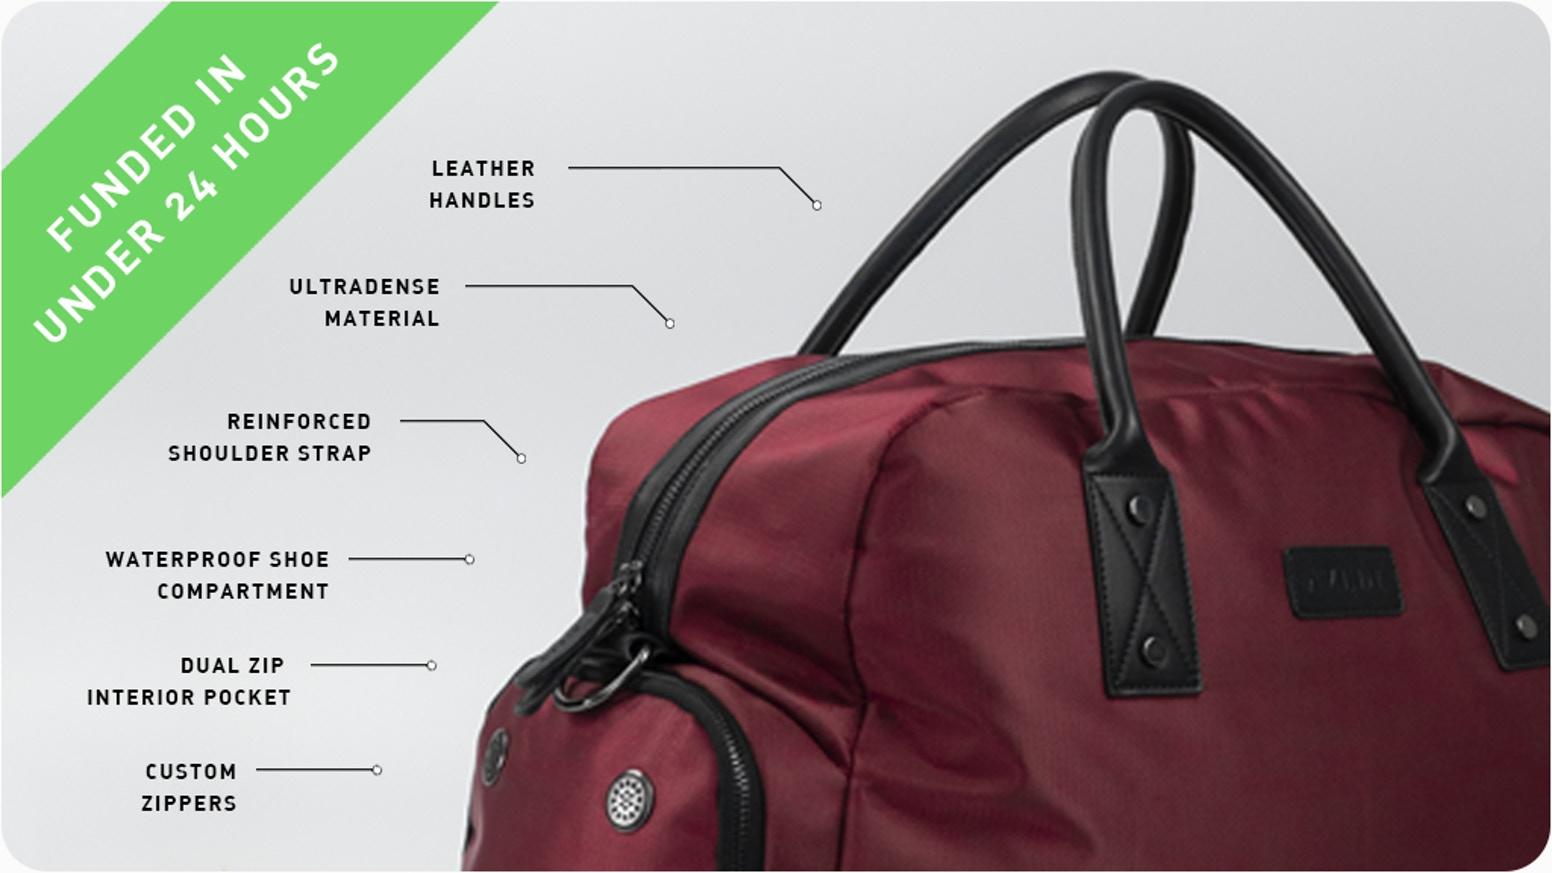 Waterproof, Shoe Pocket, Cabin Bag Friendly, Notebook compartment and RFID Blocking Pocket